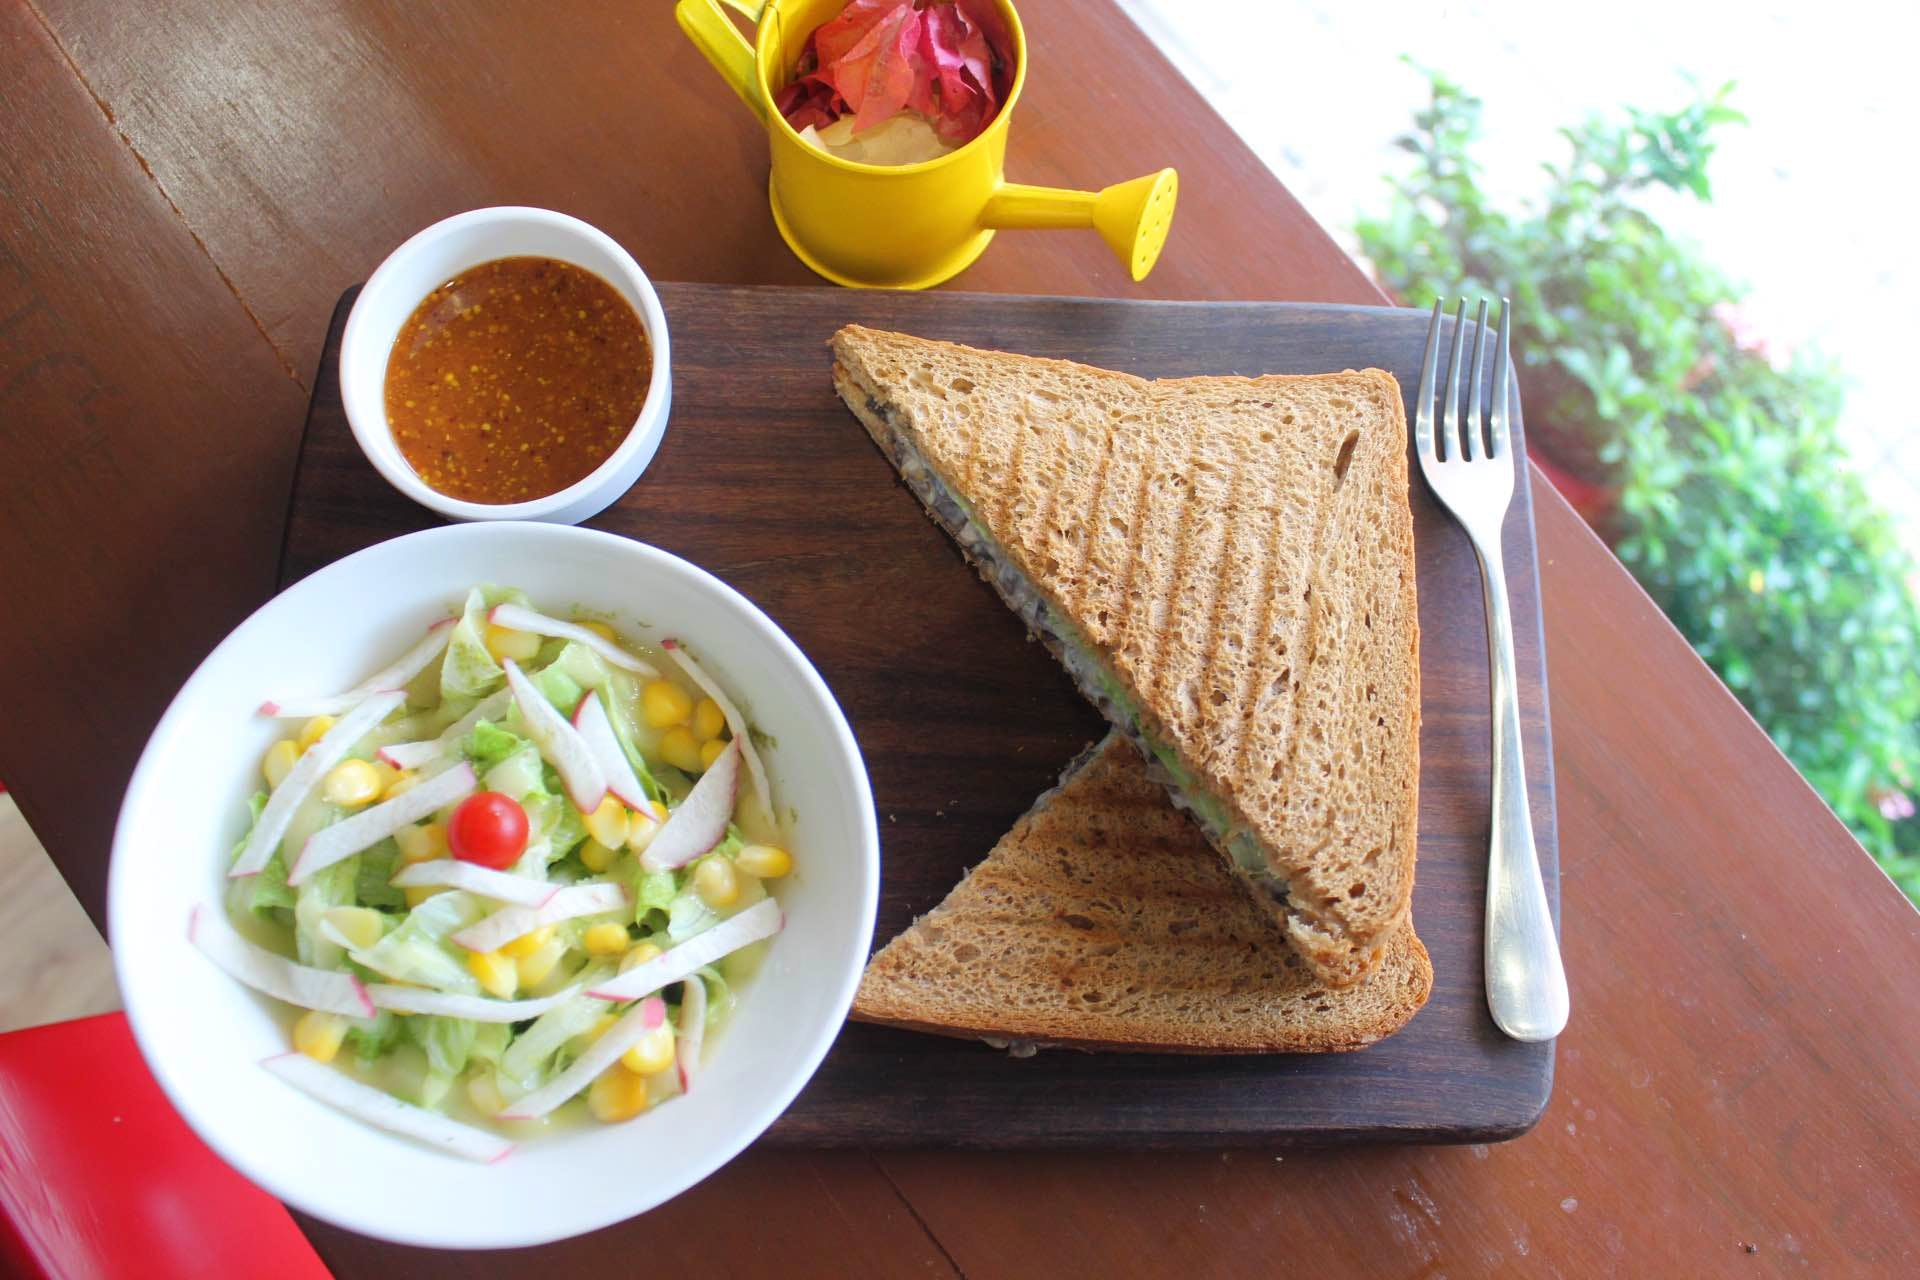 Get A Salad Subscription From This Cafe Now!